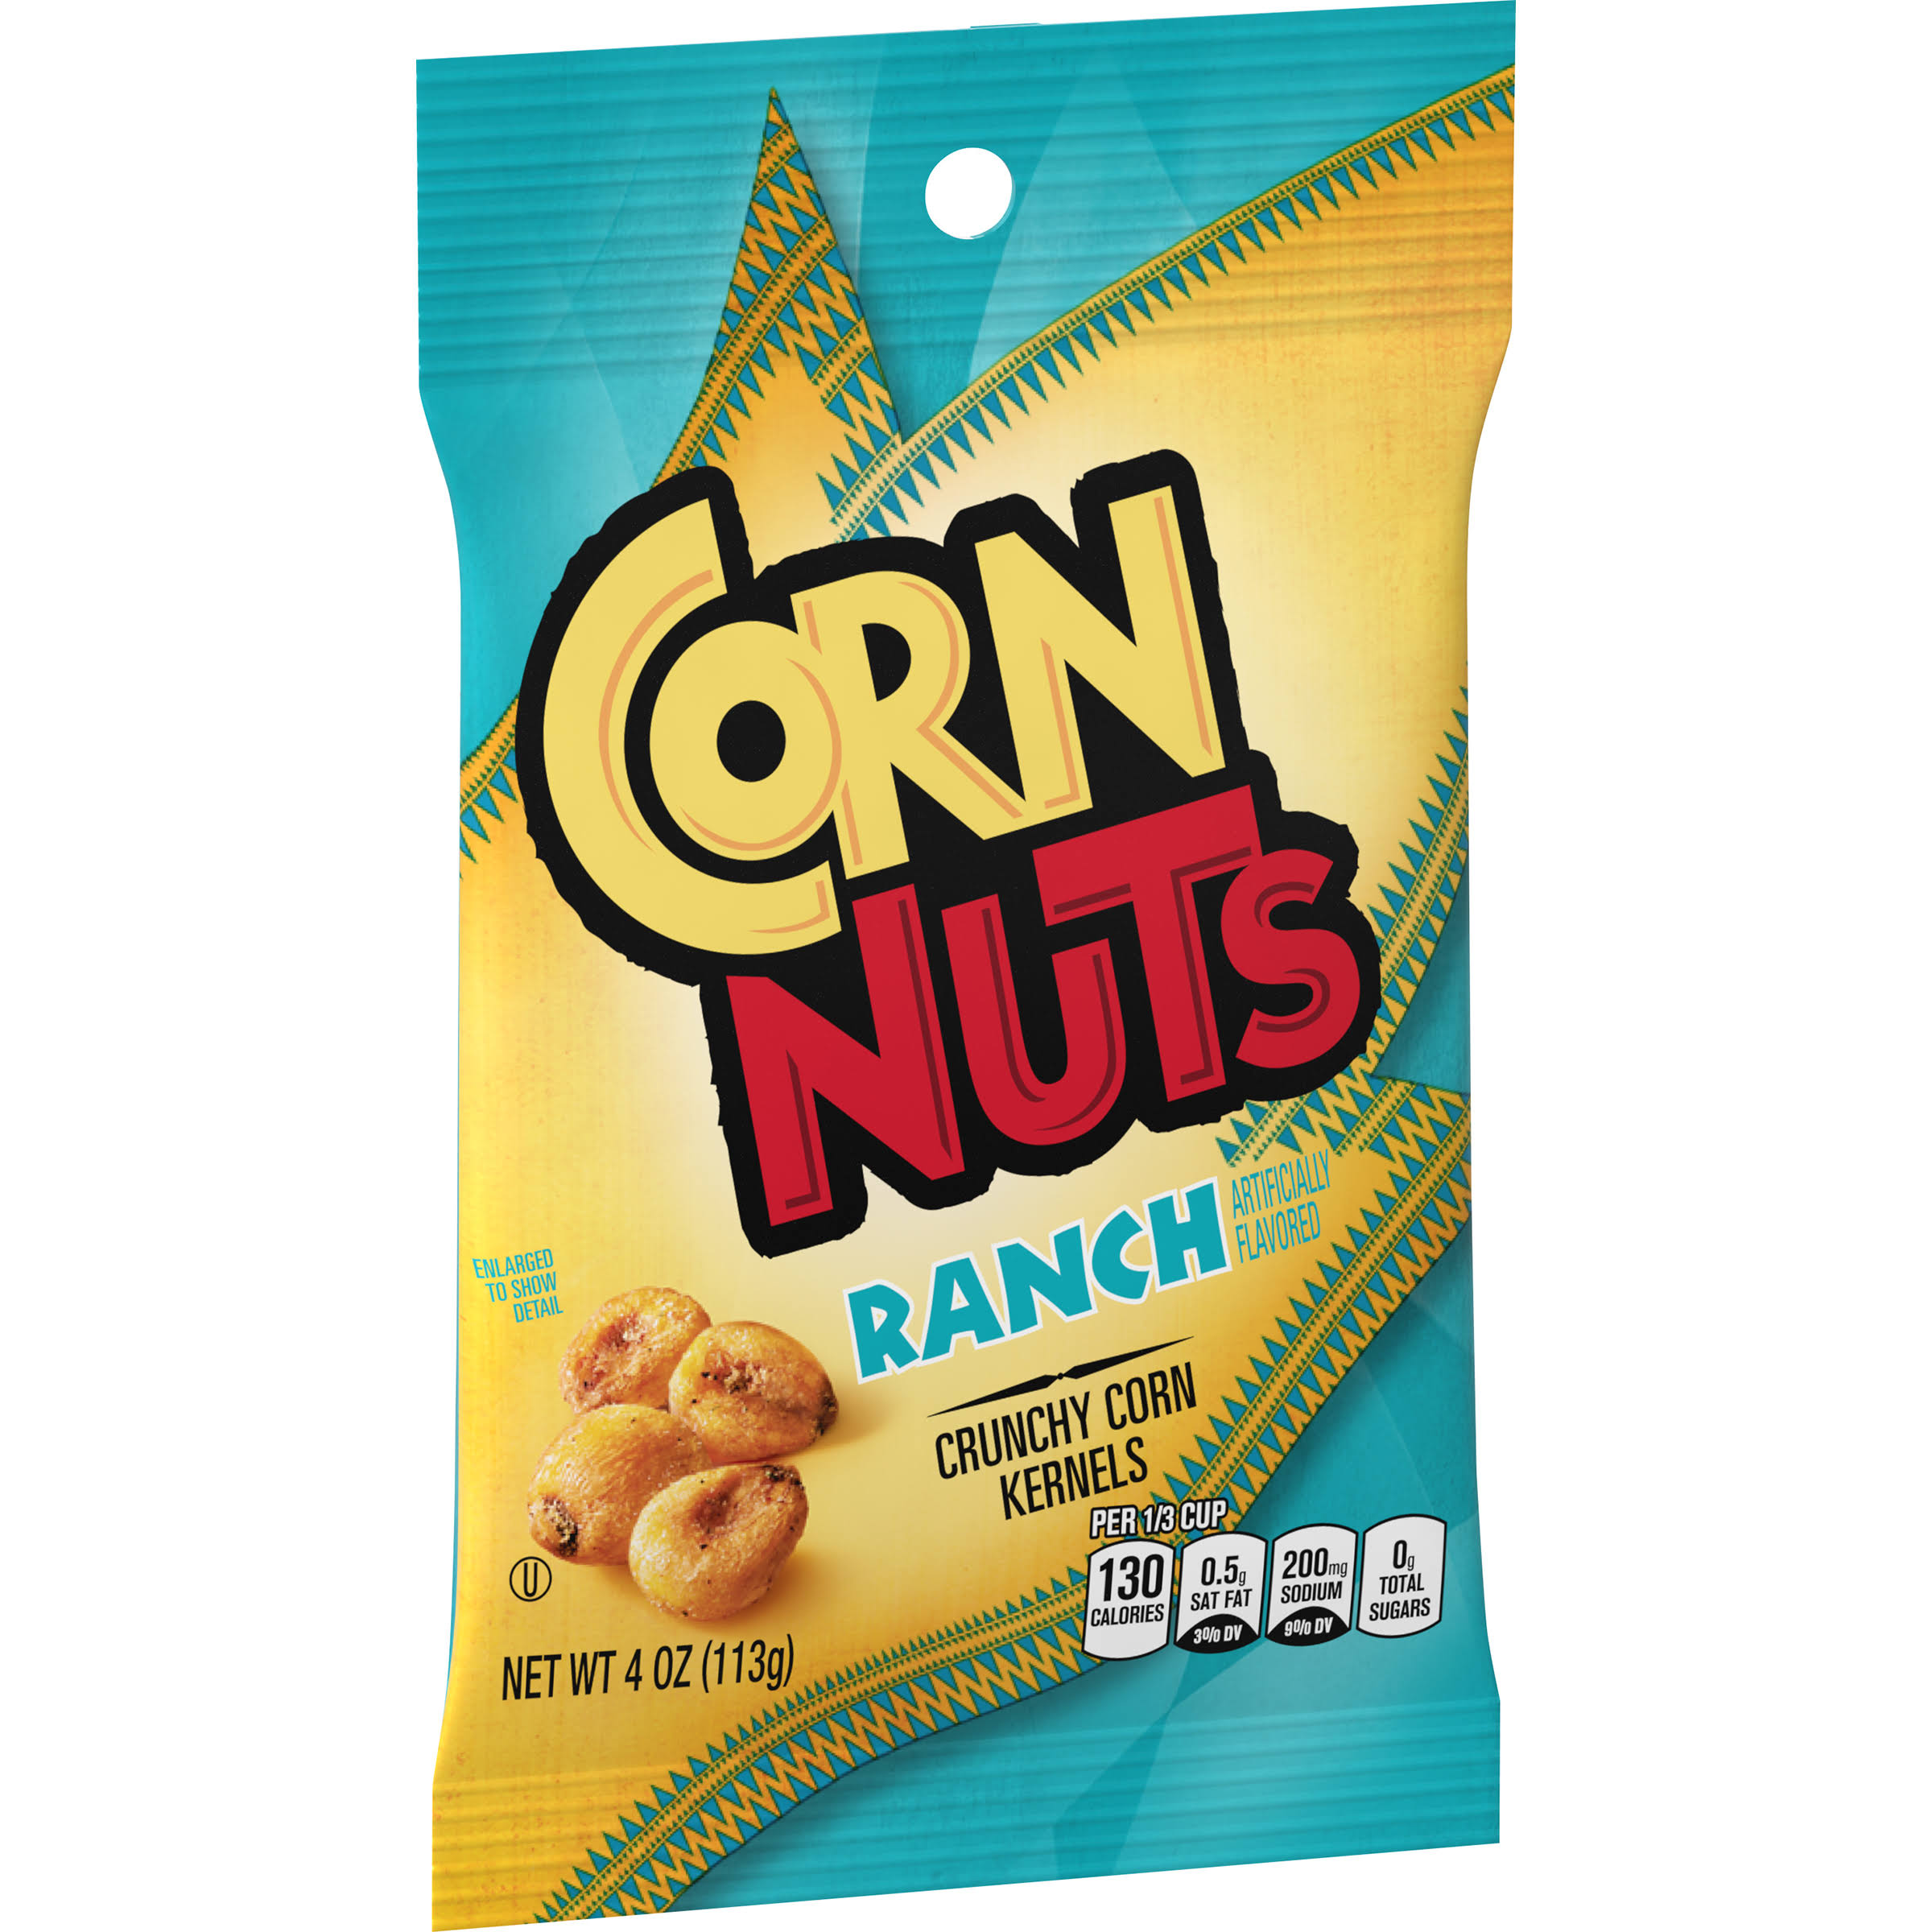 Kraft Corn Nuts Snack - Ranch Flavored, 4oz